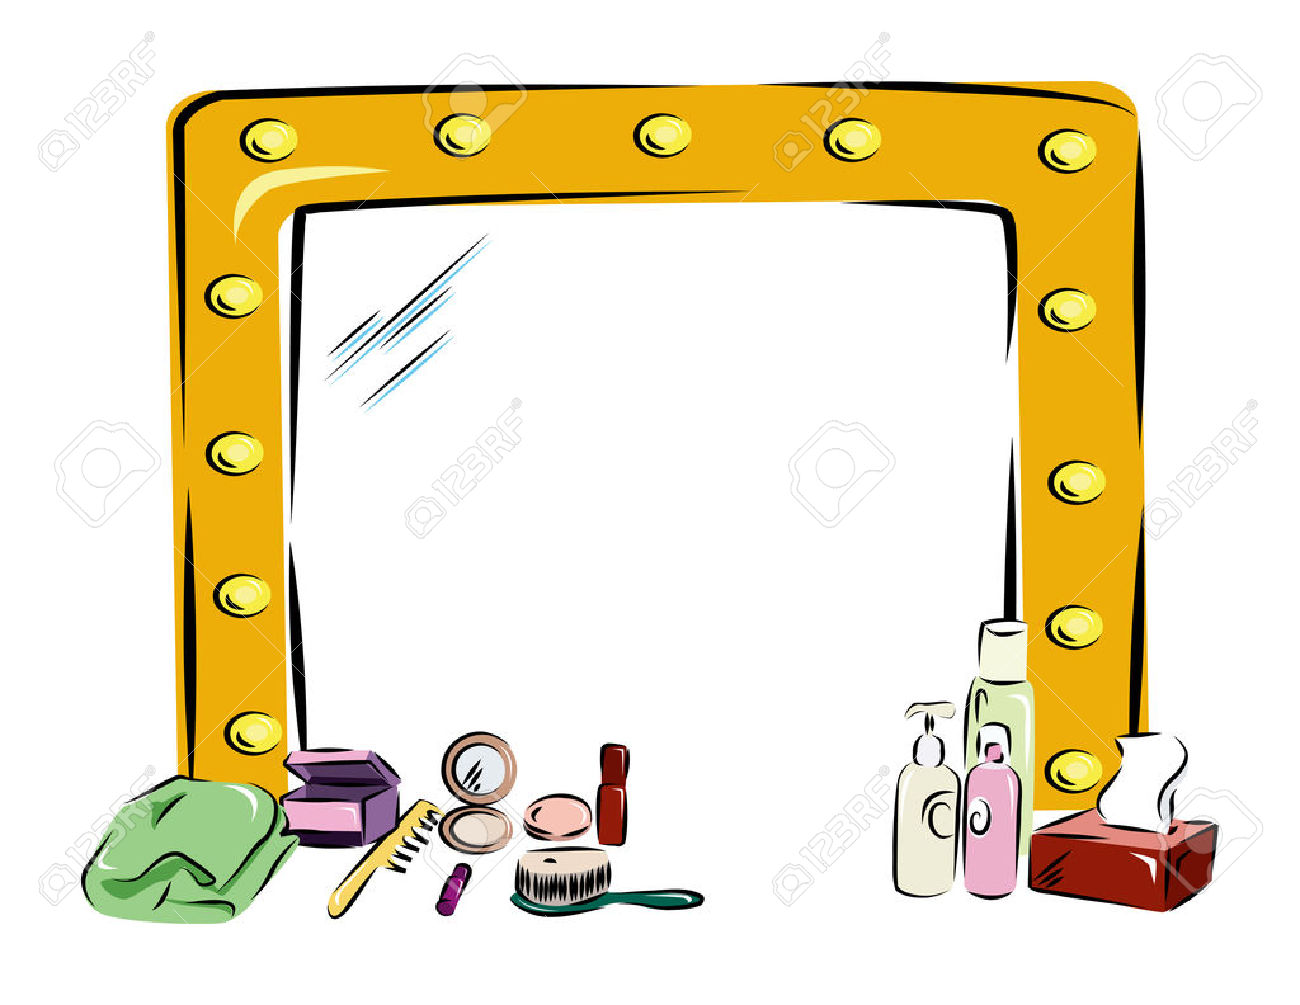 Mirror Clip Art Free Clipart Panda - Free Clipart Images